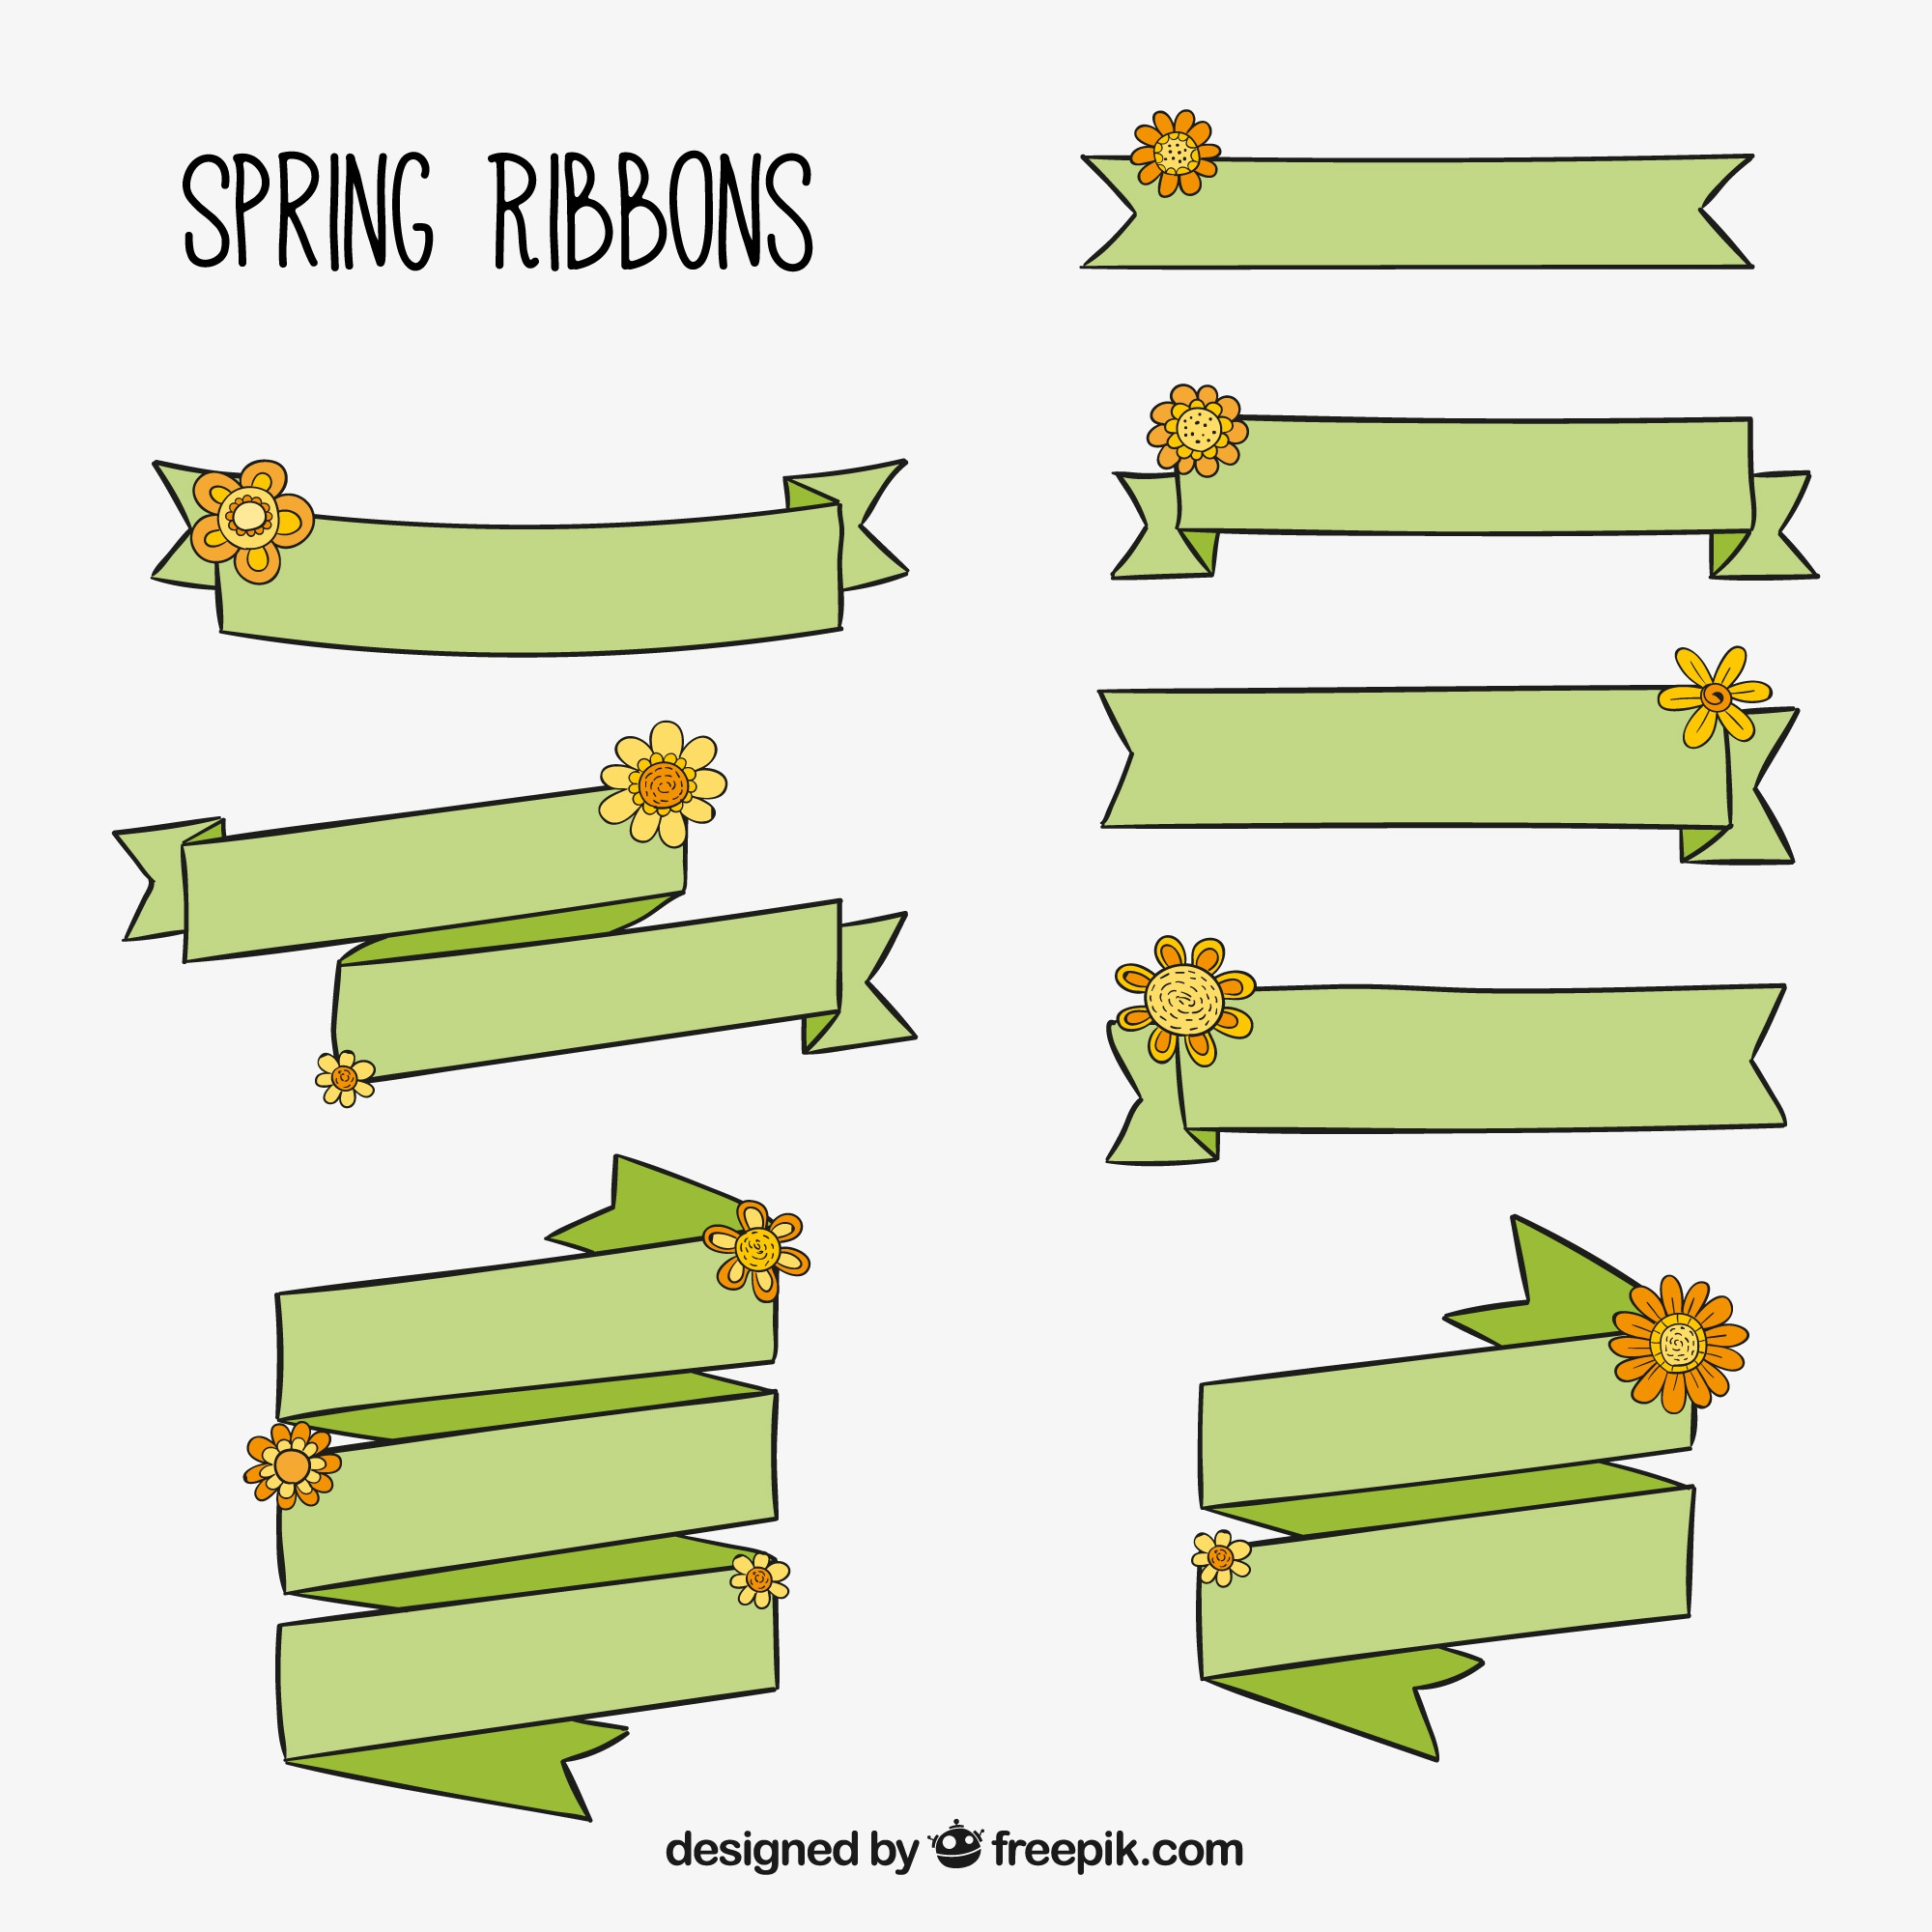 Green spring ribbons with hand-drawn flowers